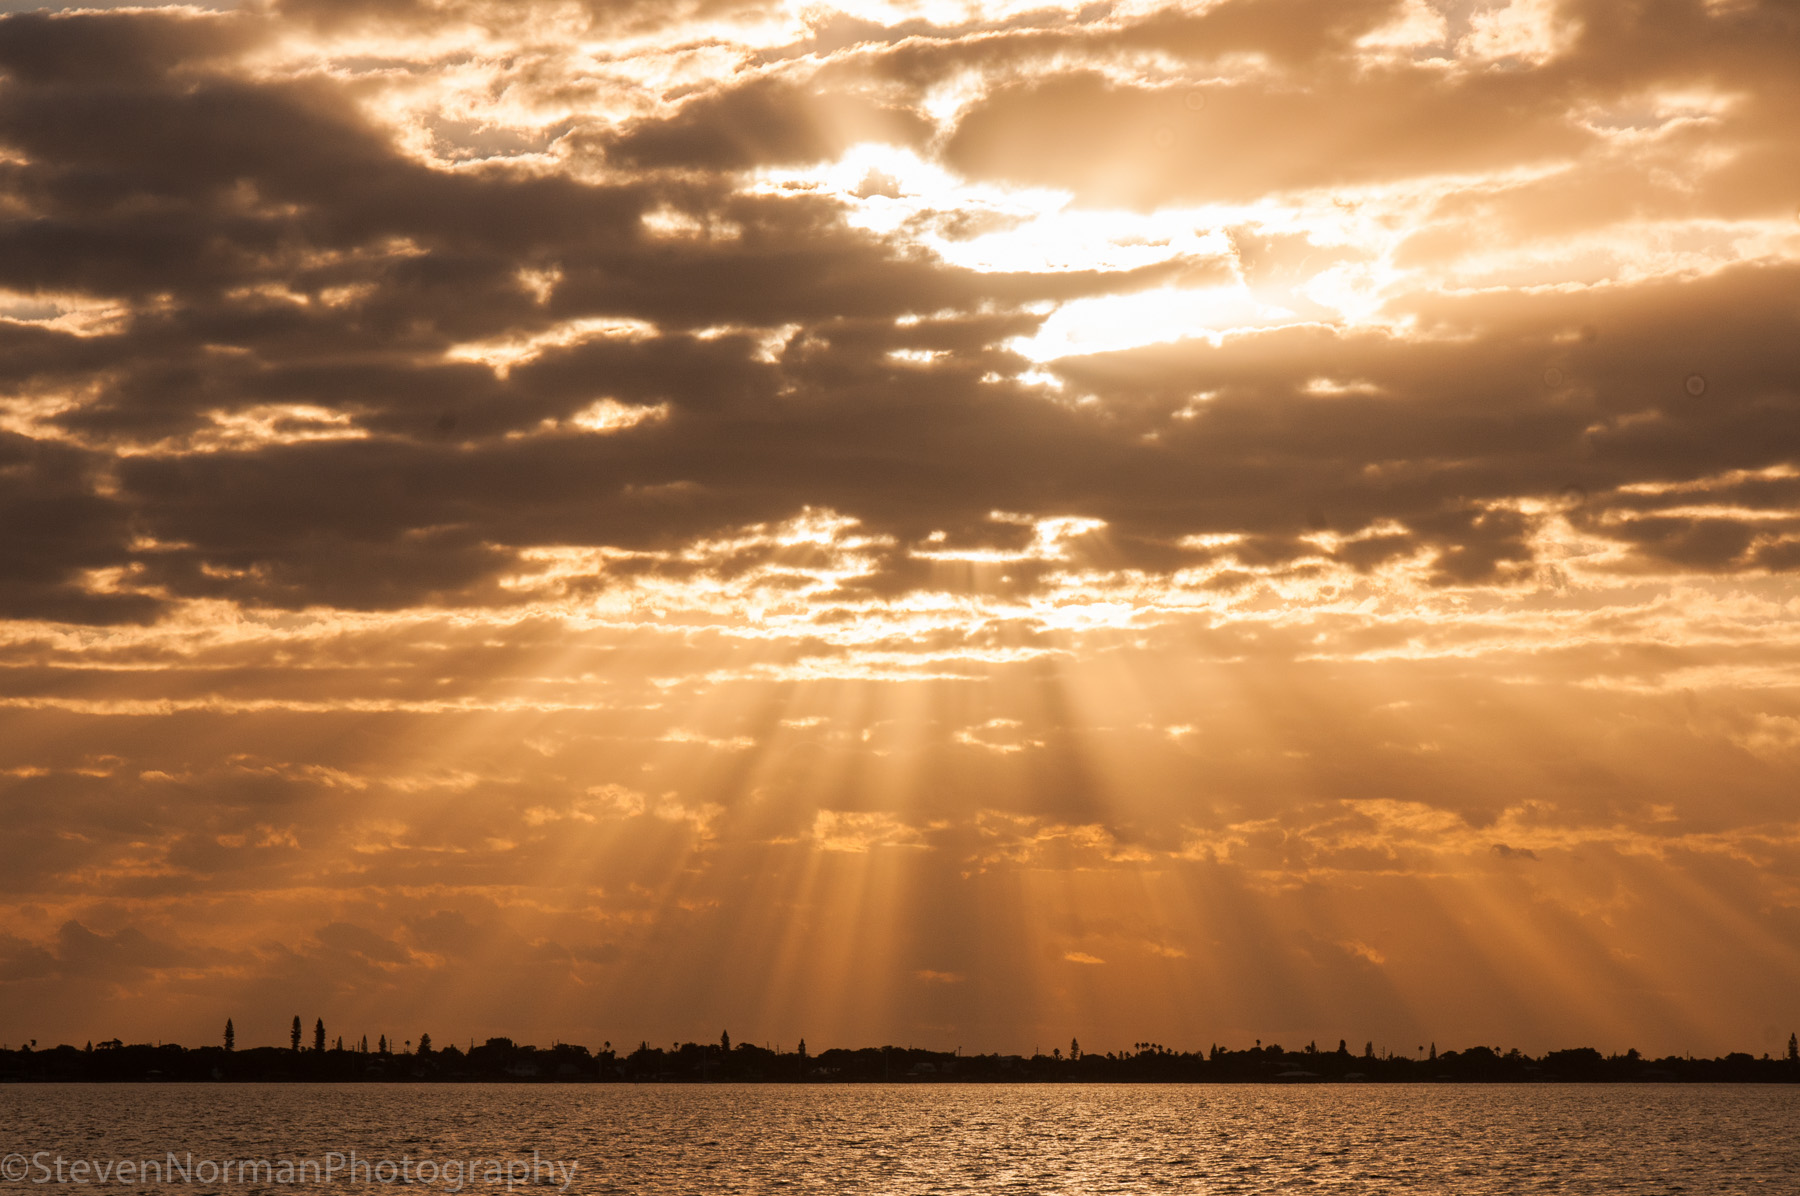 Morning Sun Breaks Through the Clouds | Steven's Travels